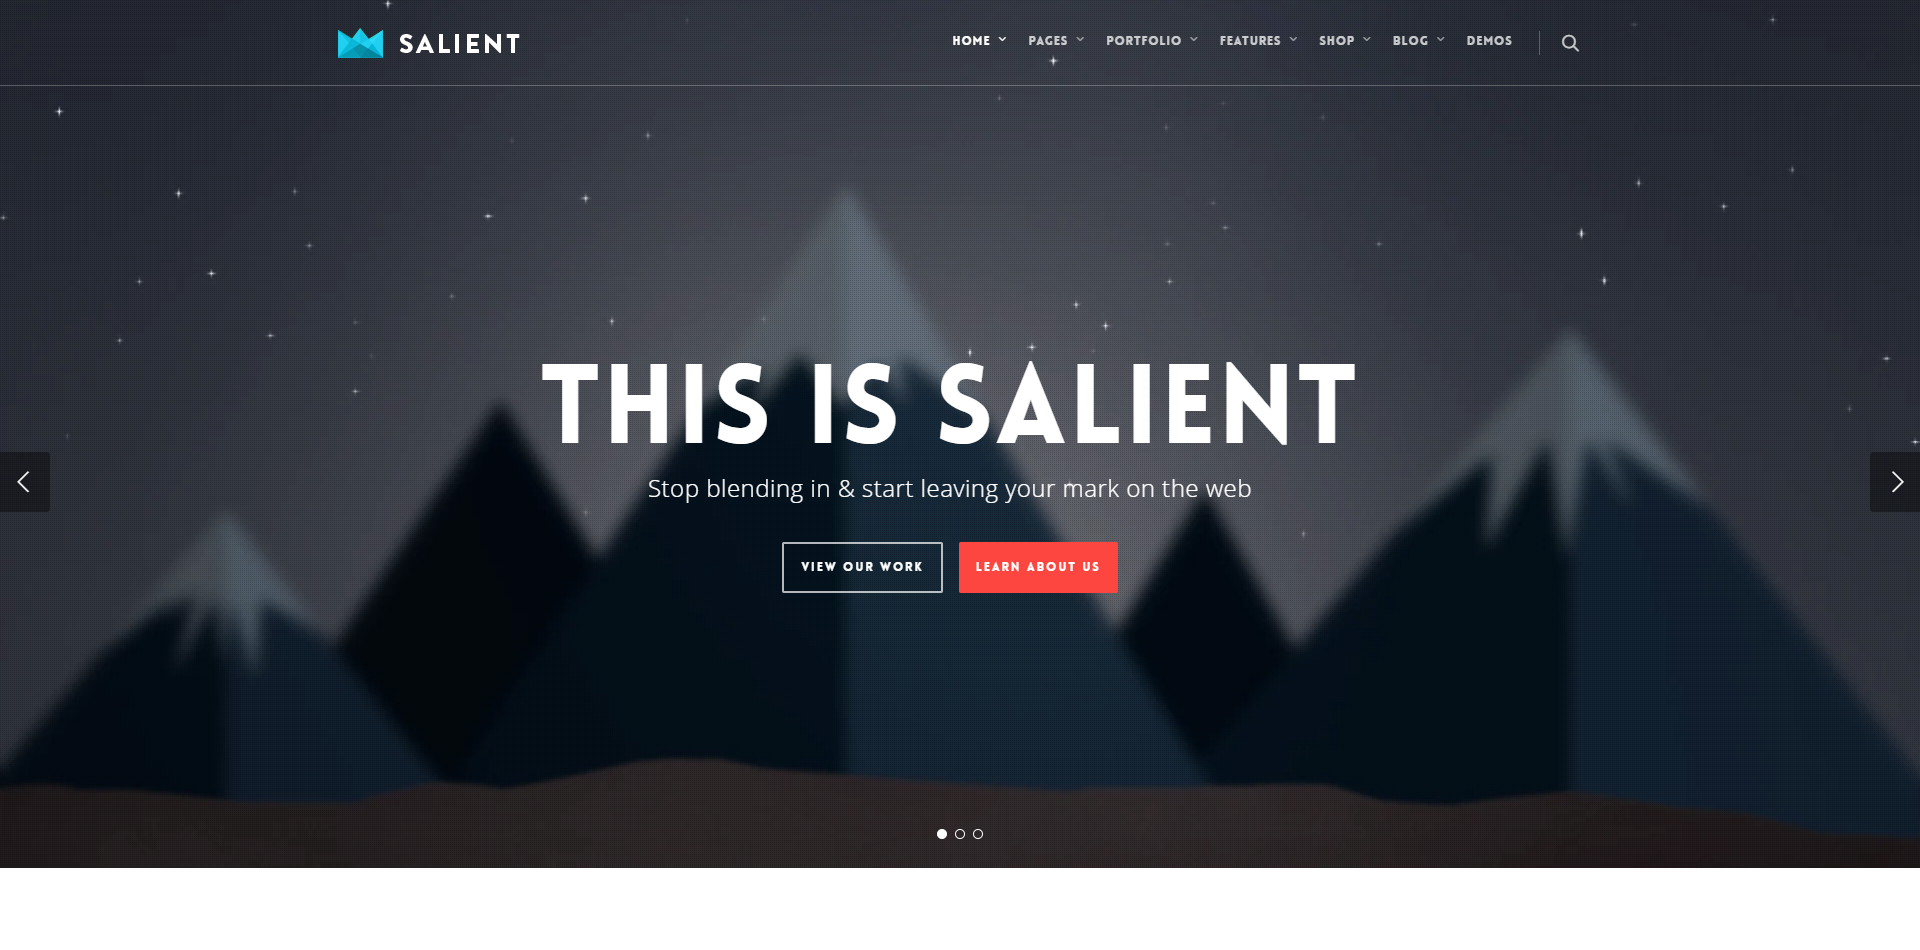 WPion Review: The Salient Multipurpose WordPress Template